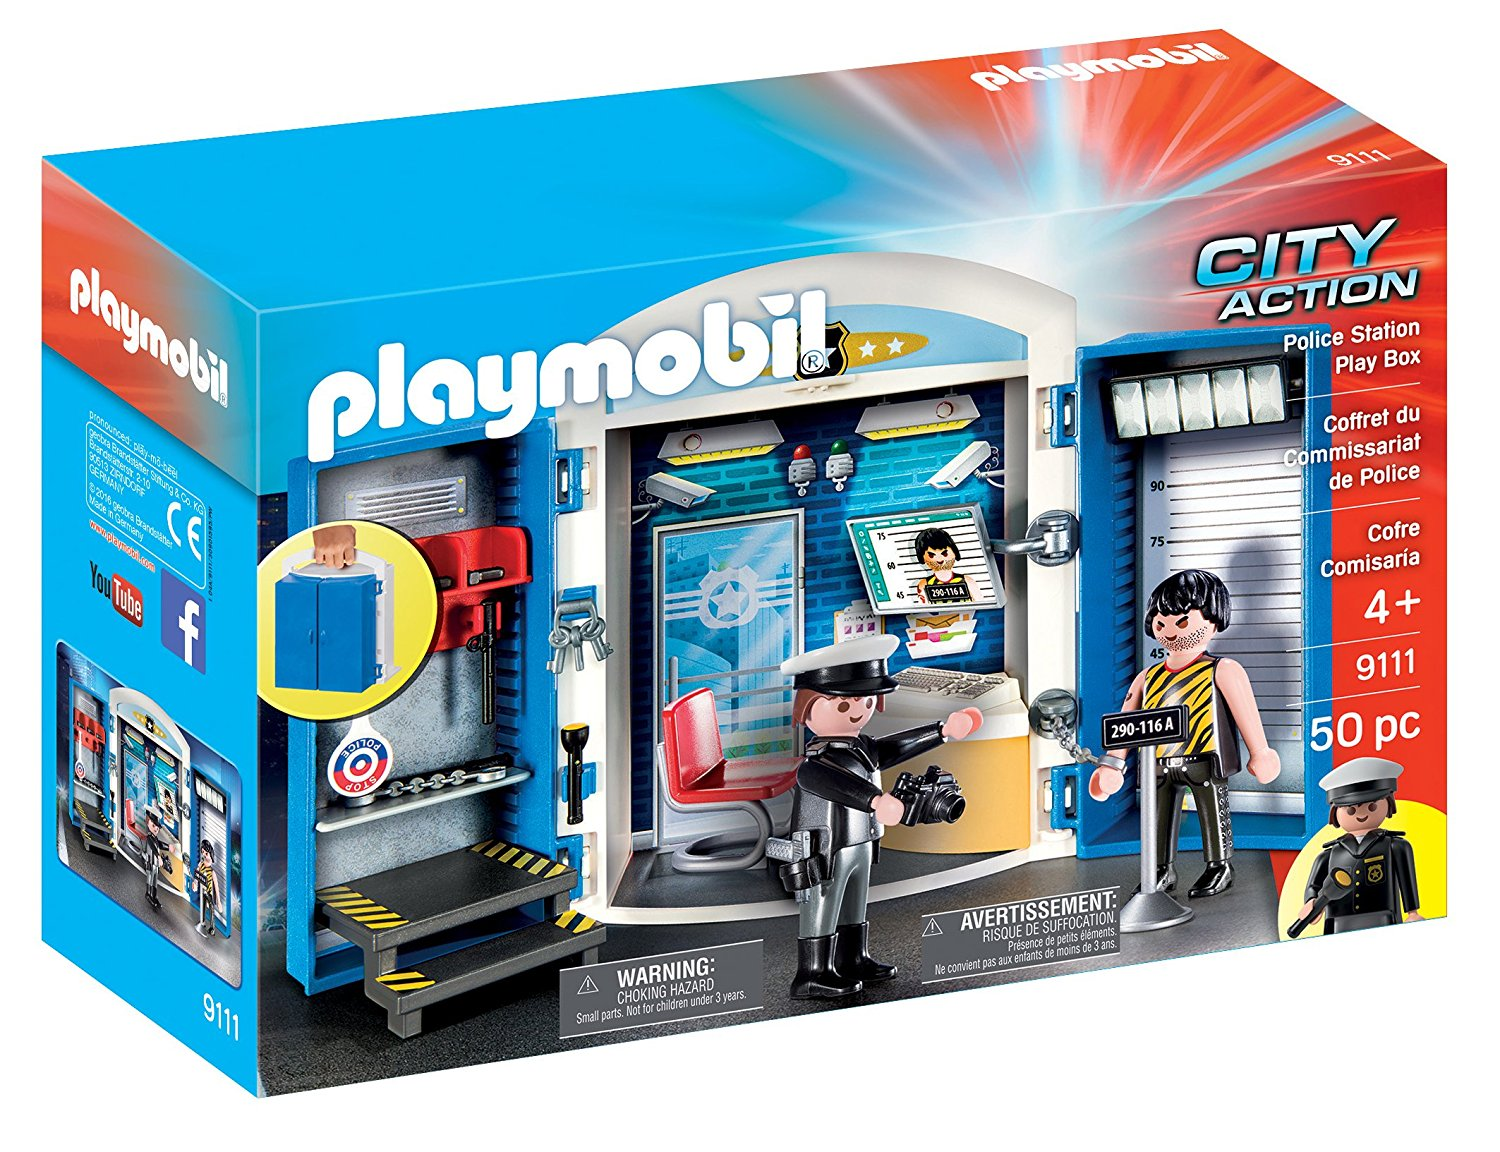 Playmobil commissariat toys r us